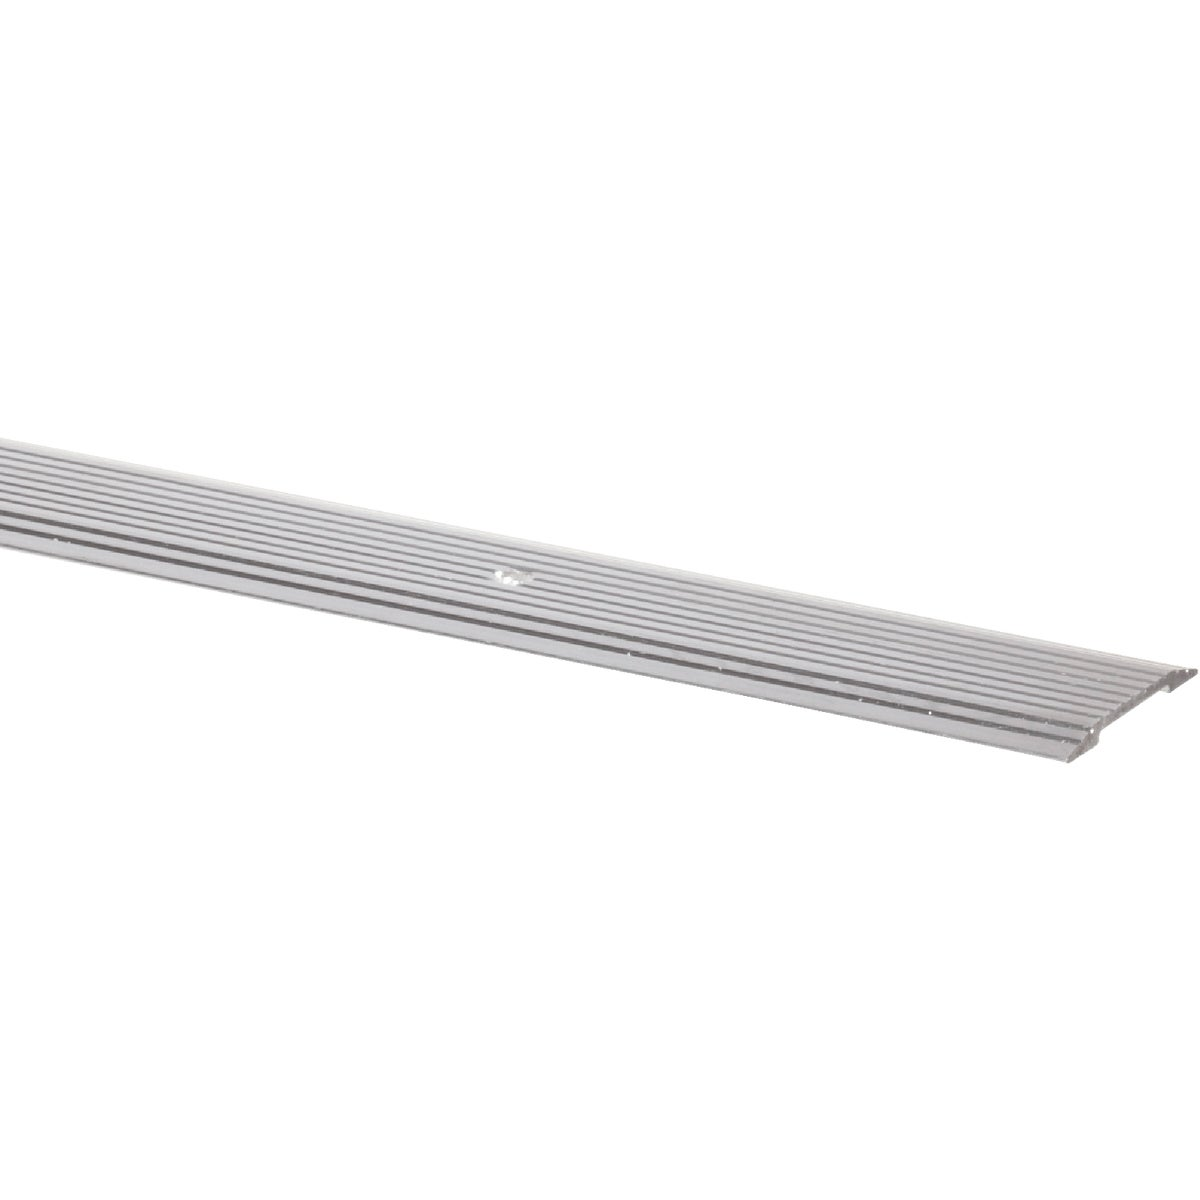 "1-1/4""X3' SLVR BINDING - 78014 by M D Building Prod"